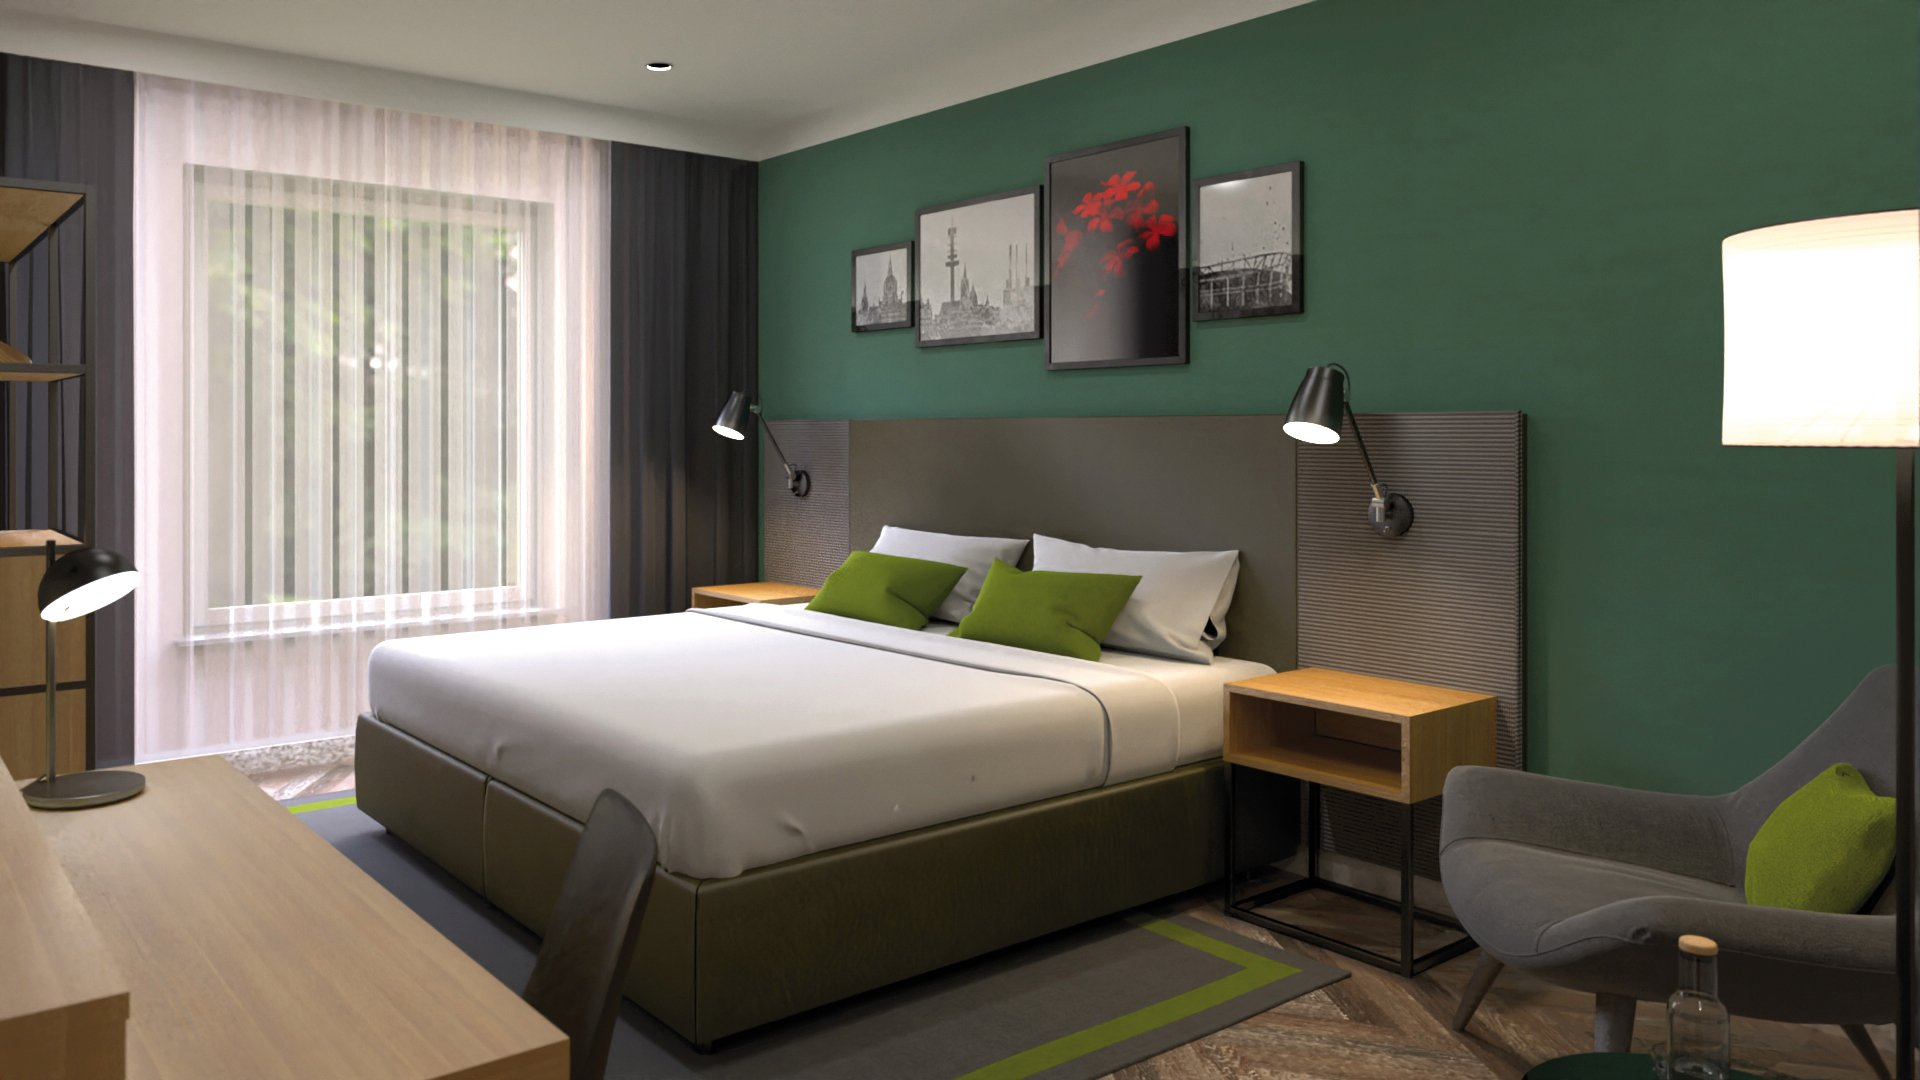 Mercure Hotel | Hannover